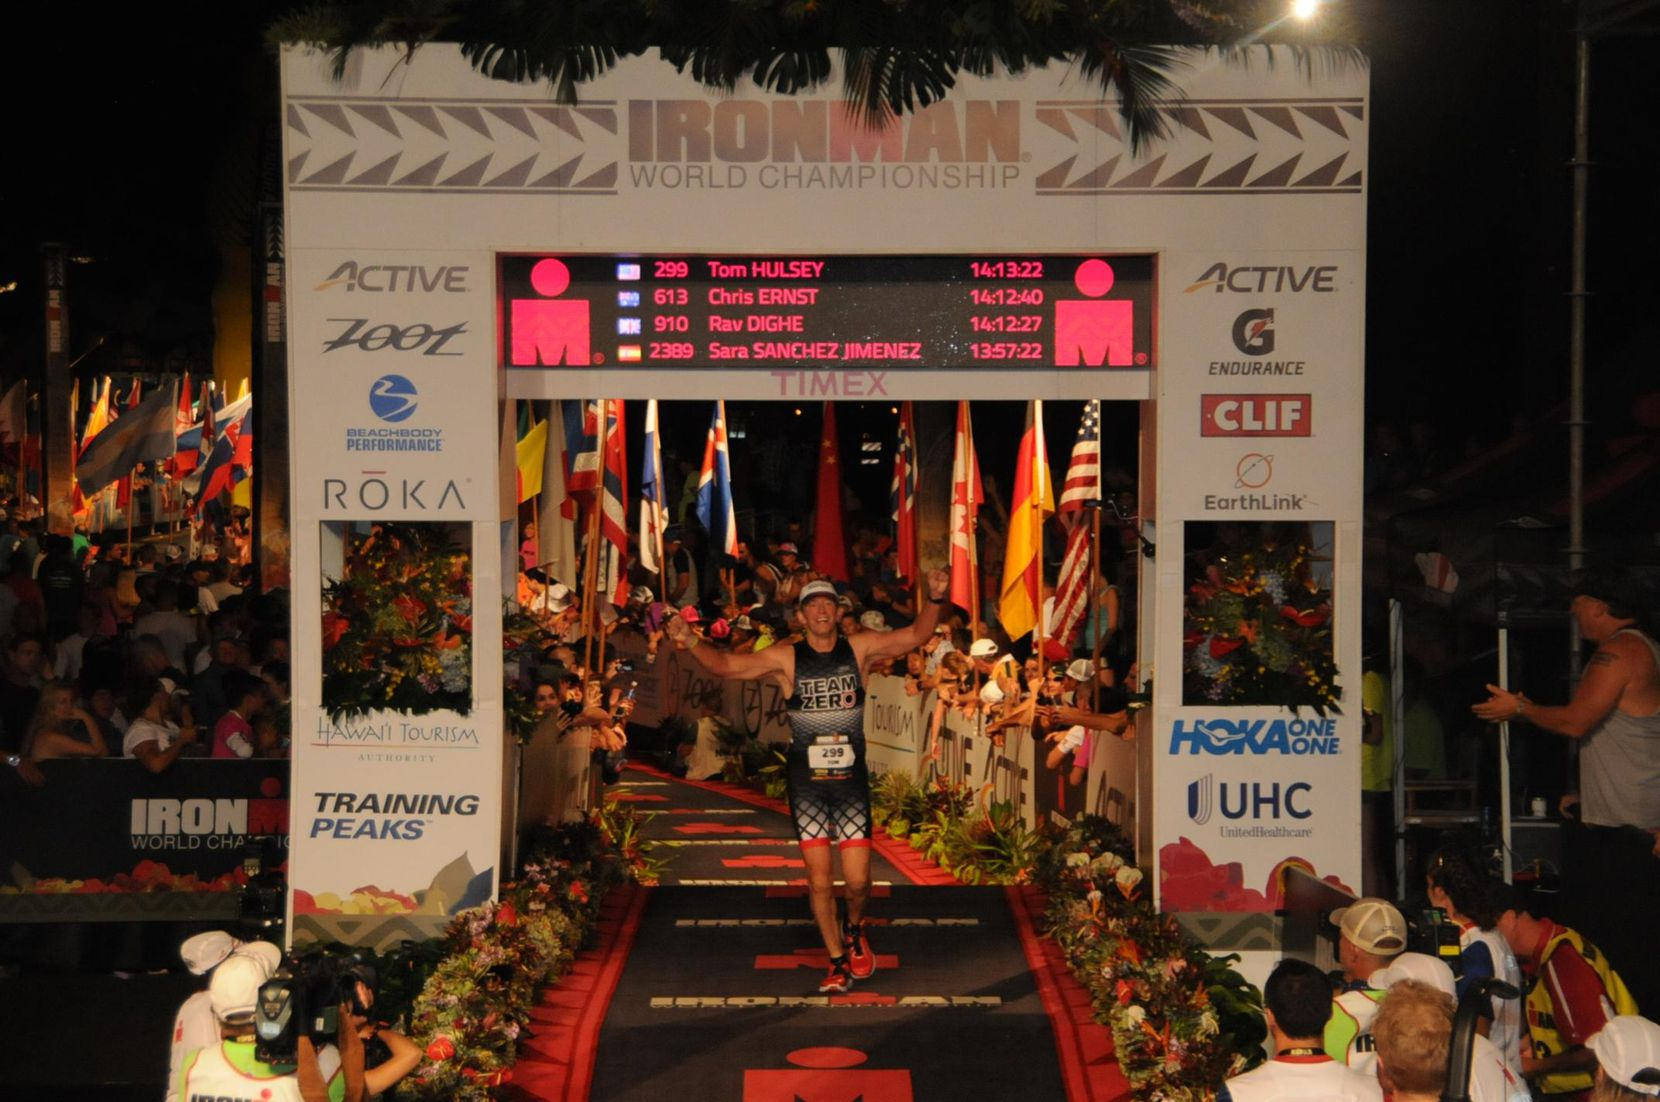 Tom Hulsey completes the Ironman World Championship in Kona, Hawaii.